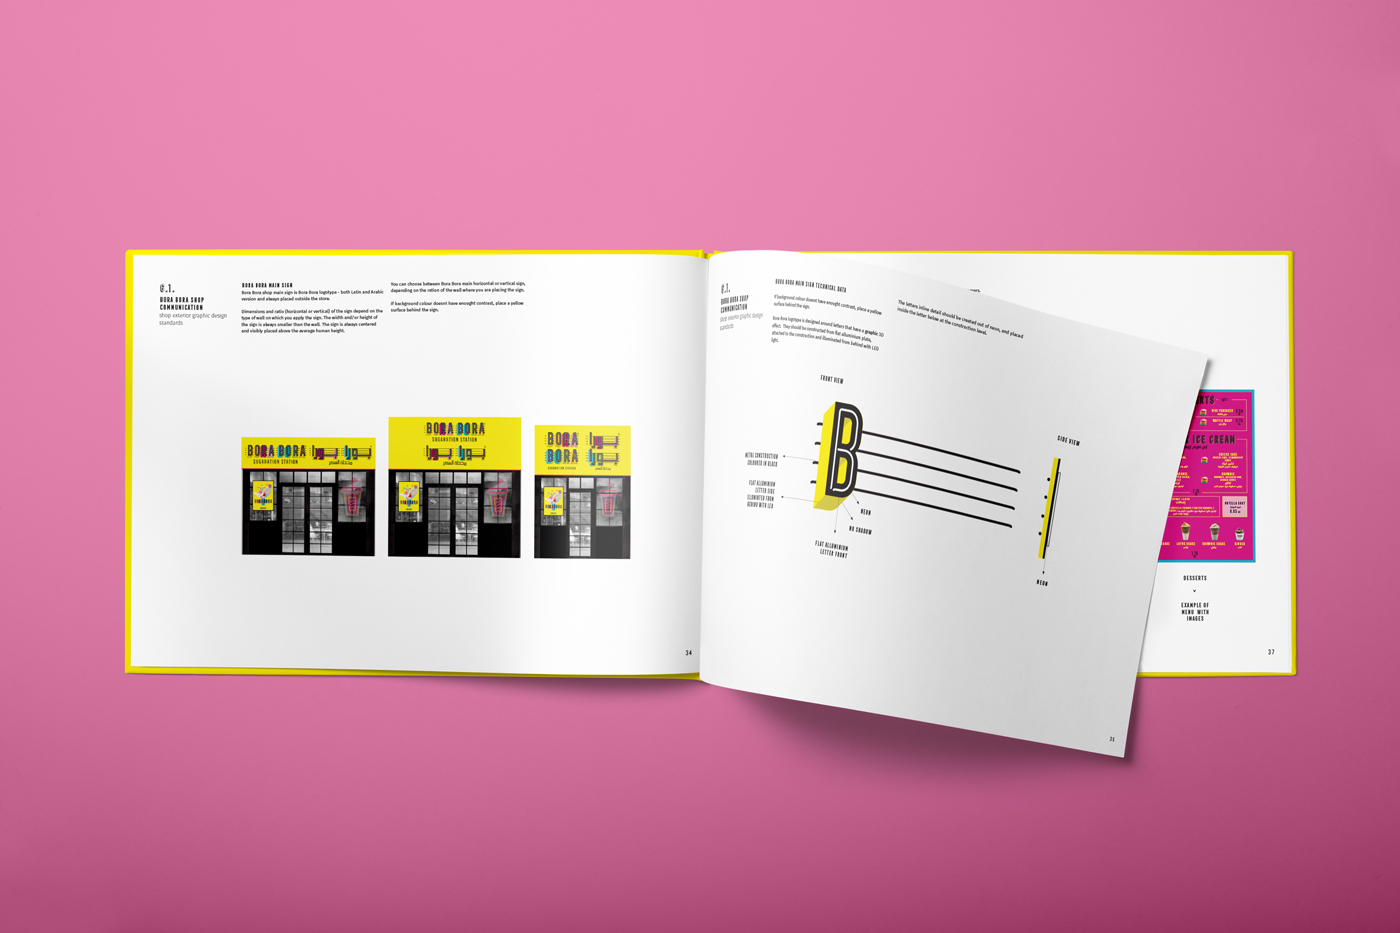 Zambelli Brand Design - Bora Bora Sugaration Station - Book of Graphic Standards